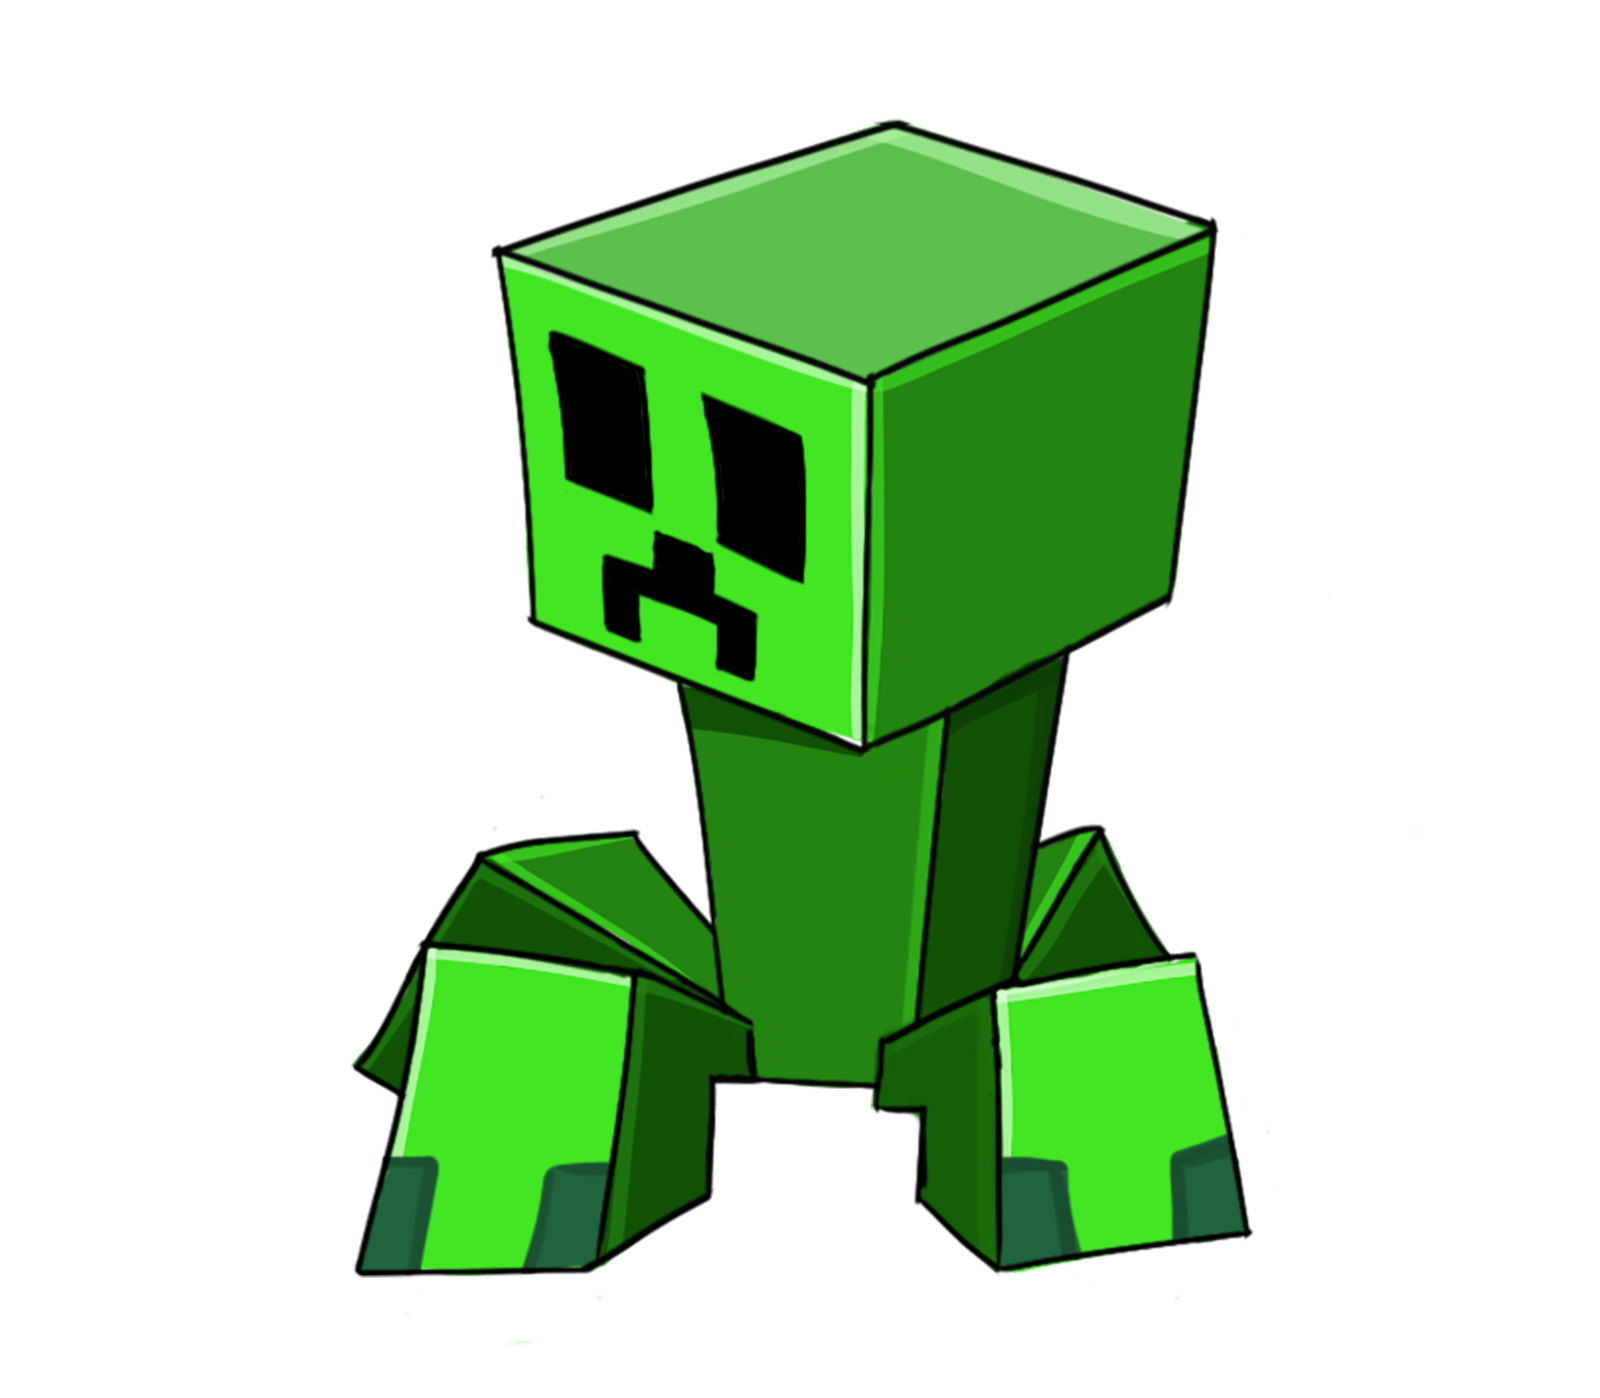 Creeper at getdrawings com. Minecraft clipart minecraft heart